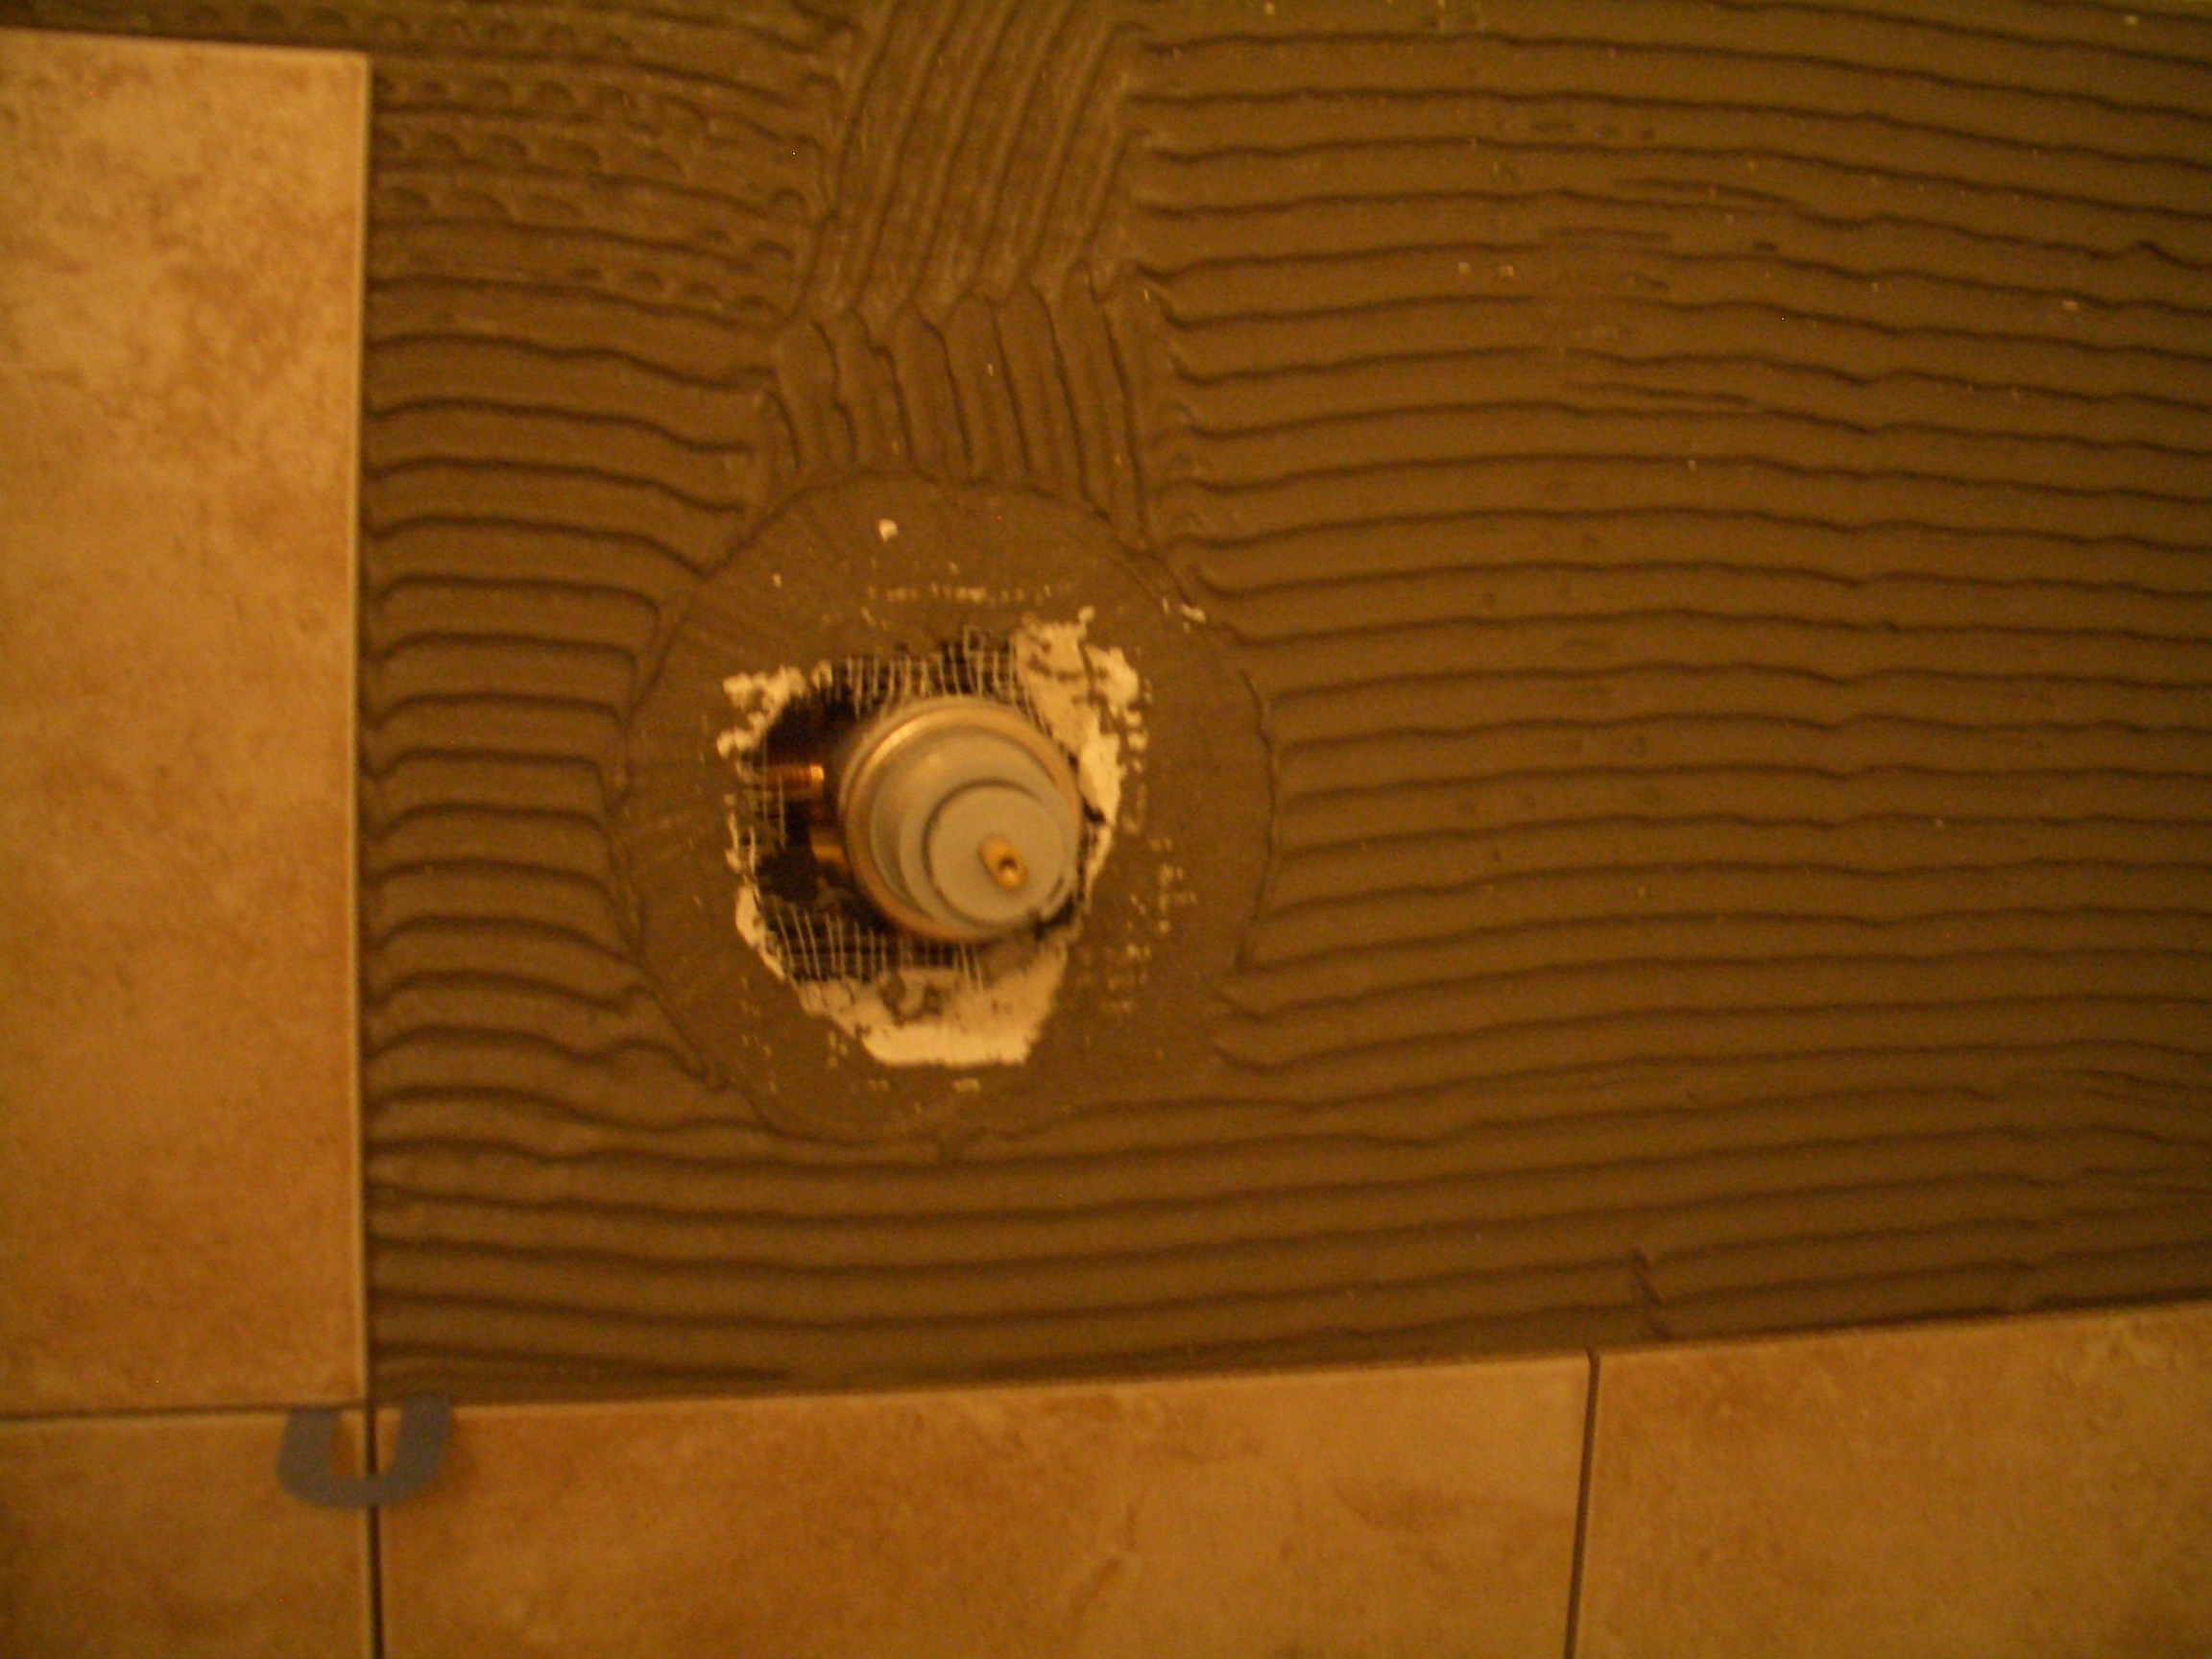 Waterproofing Cutout Holes For Fixtures In Shower Wall Tile